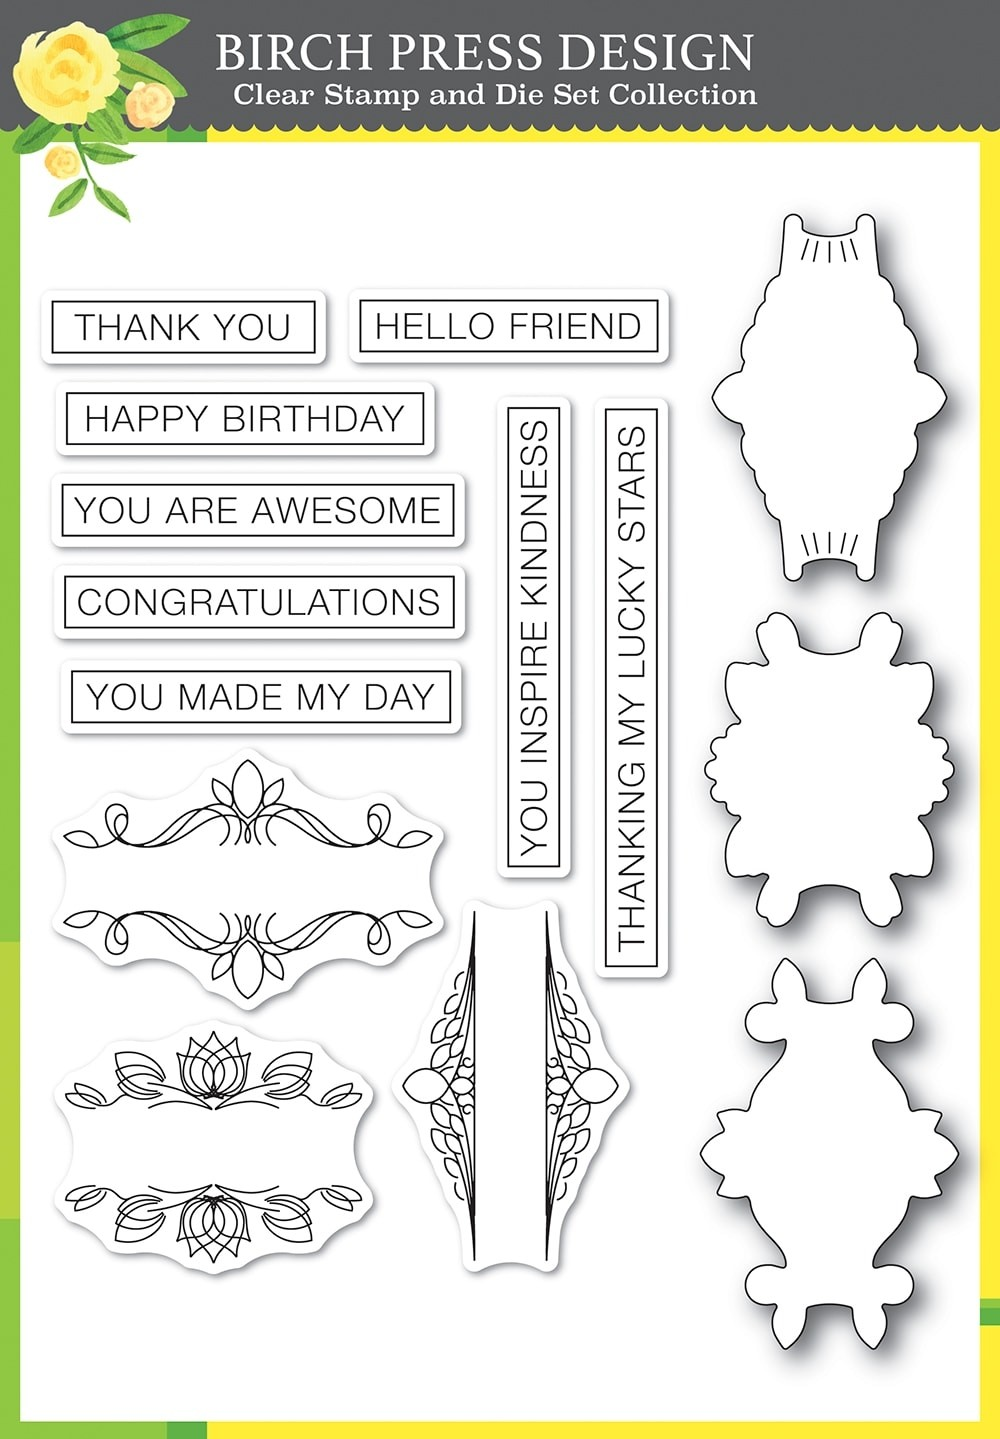 Birch Press Awesome Ticker Tape Messages clear stamp and die set 8149